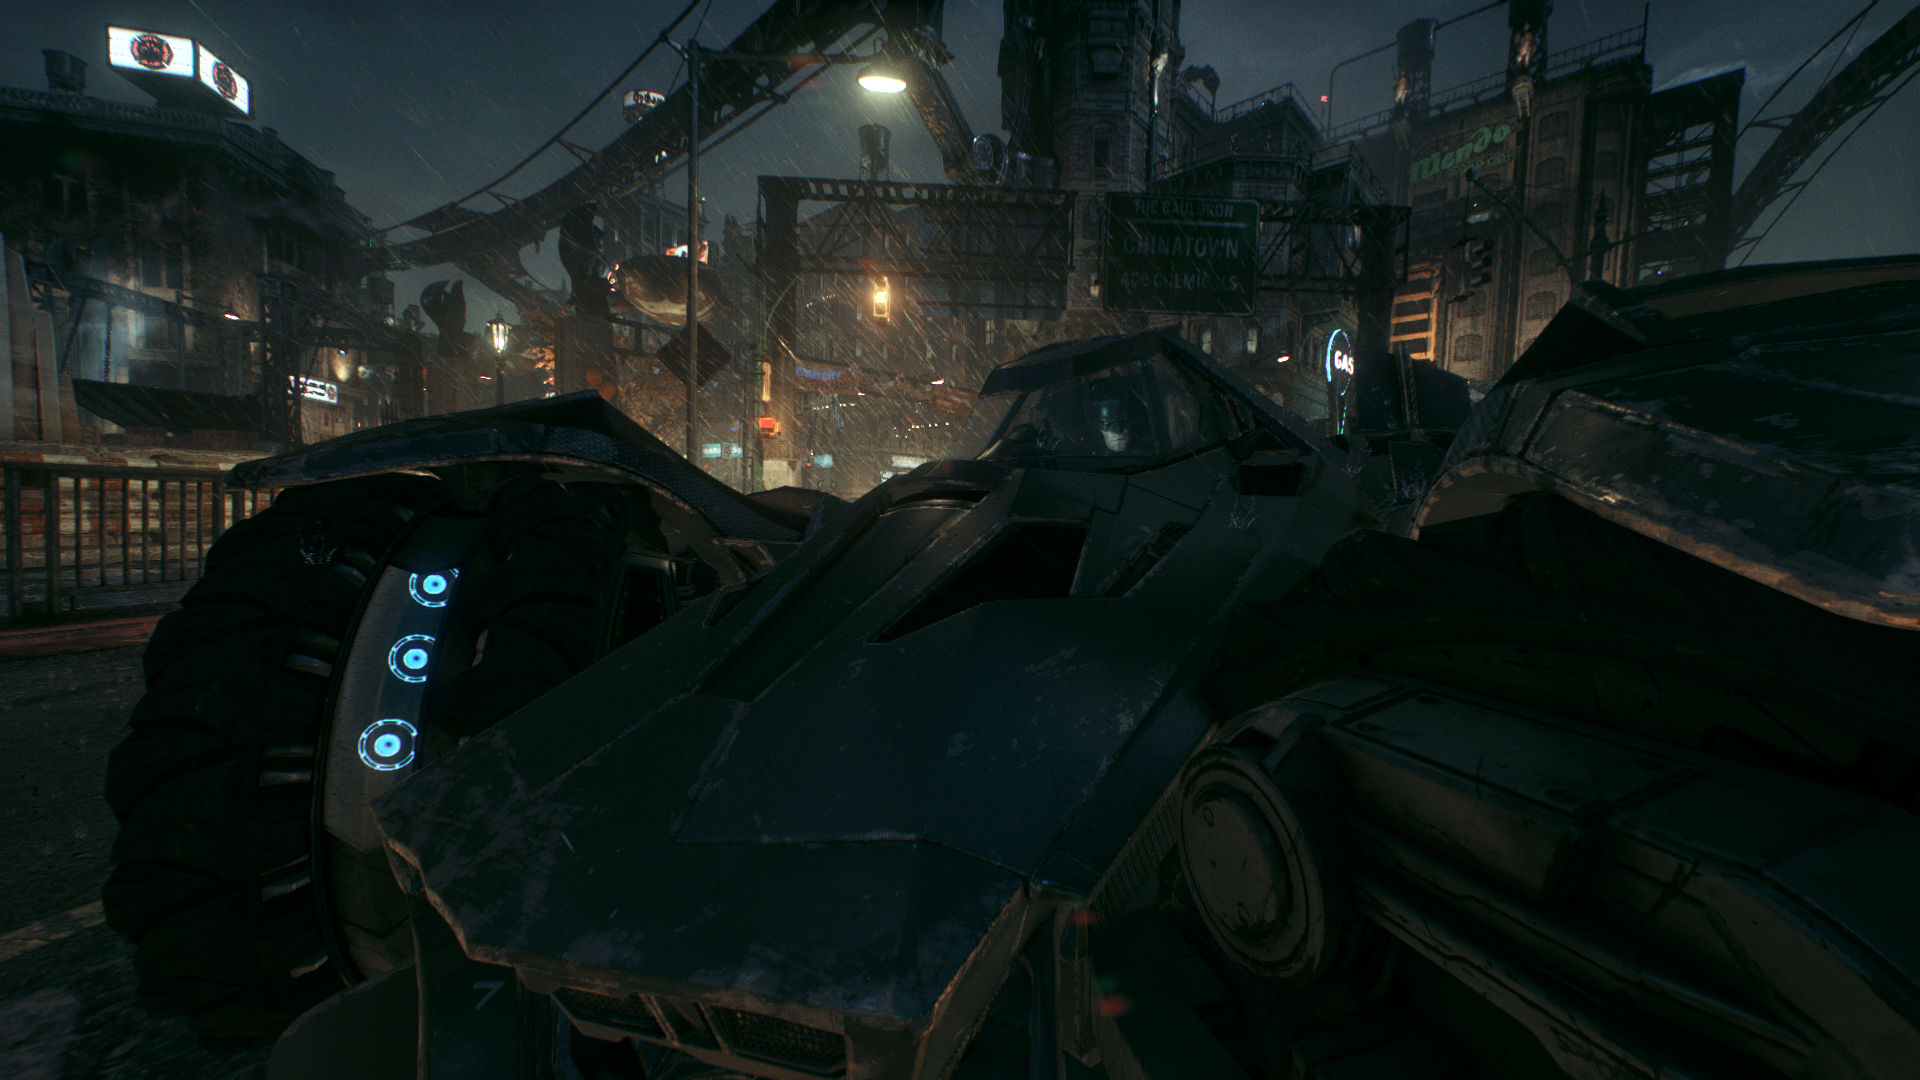 Close up view of batman inside the batmobile